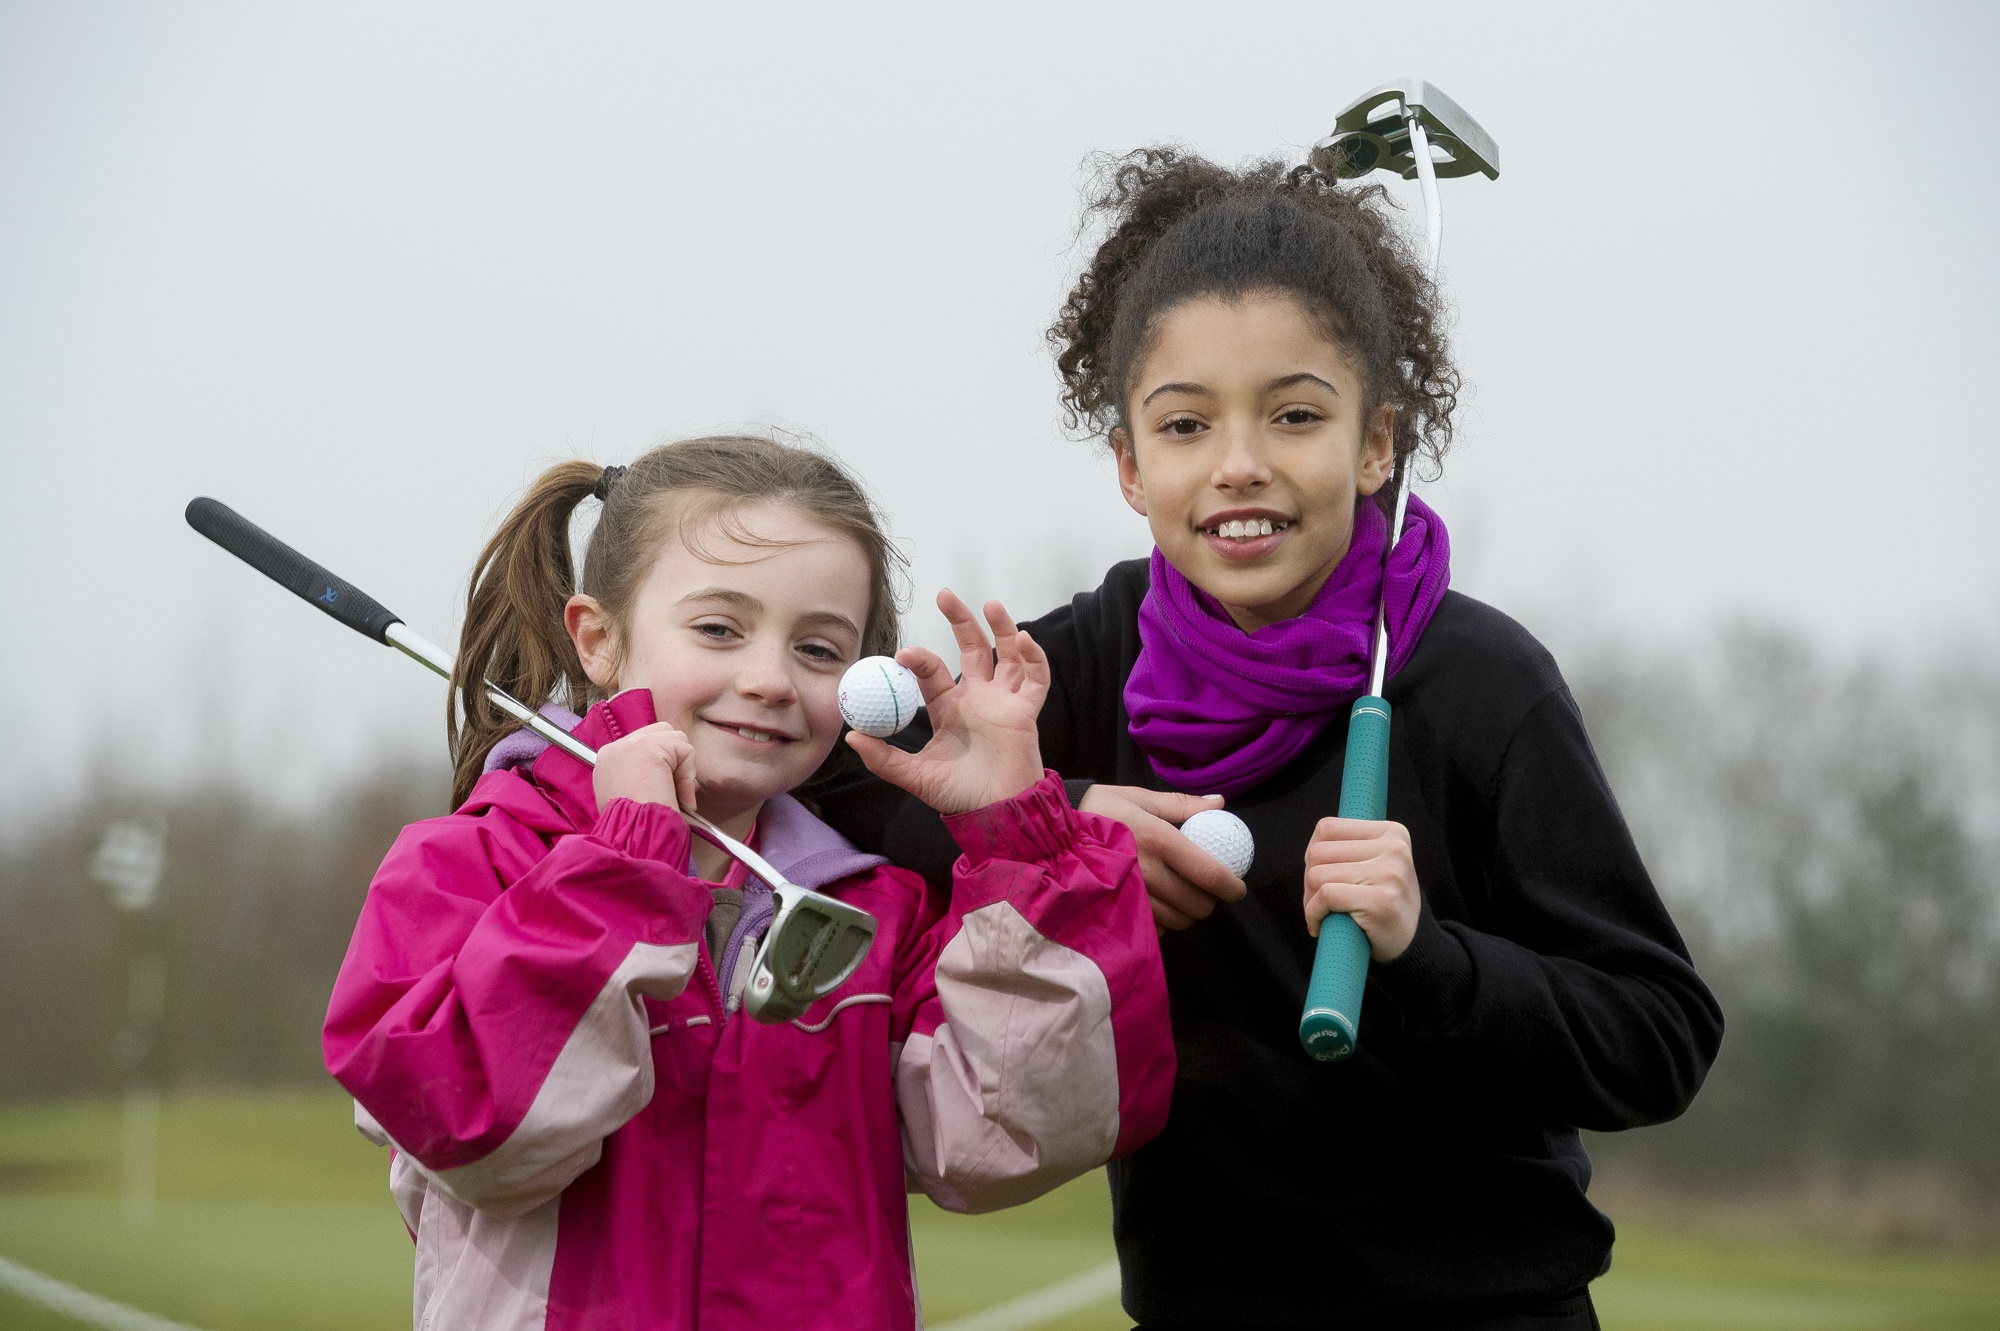 Support the Golf Foundation and receive incentives